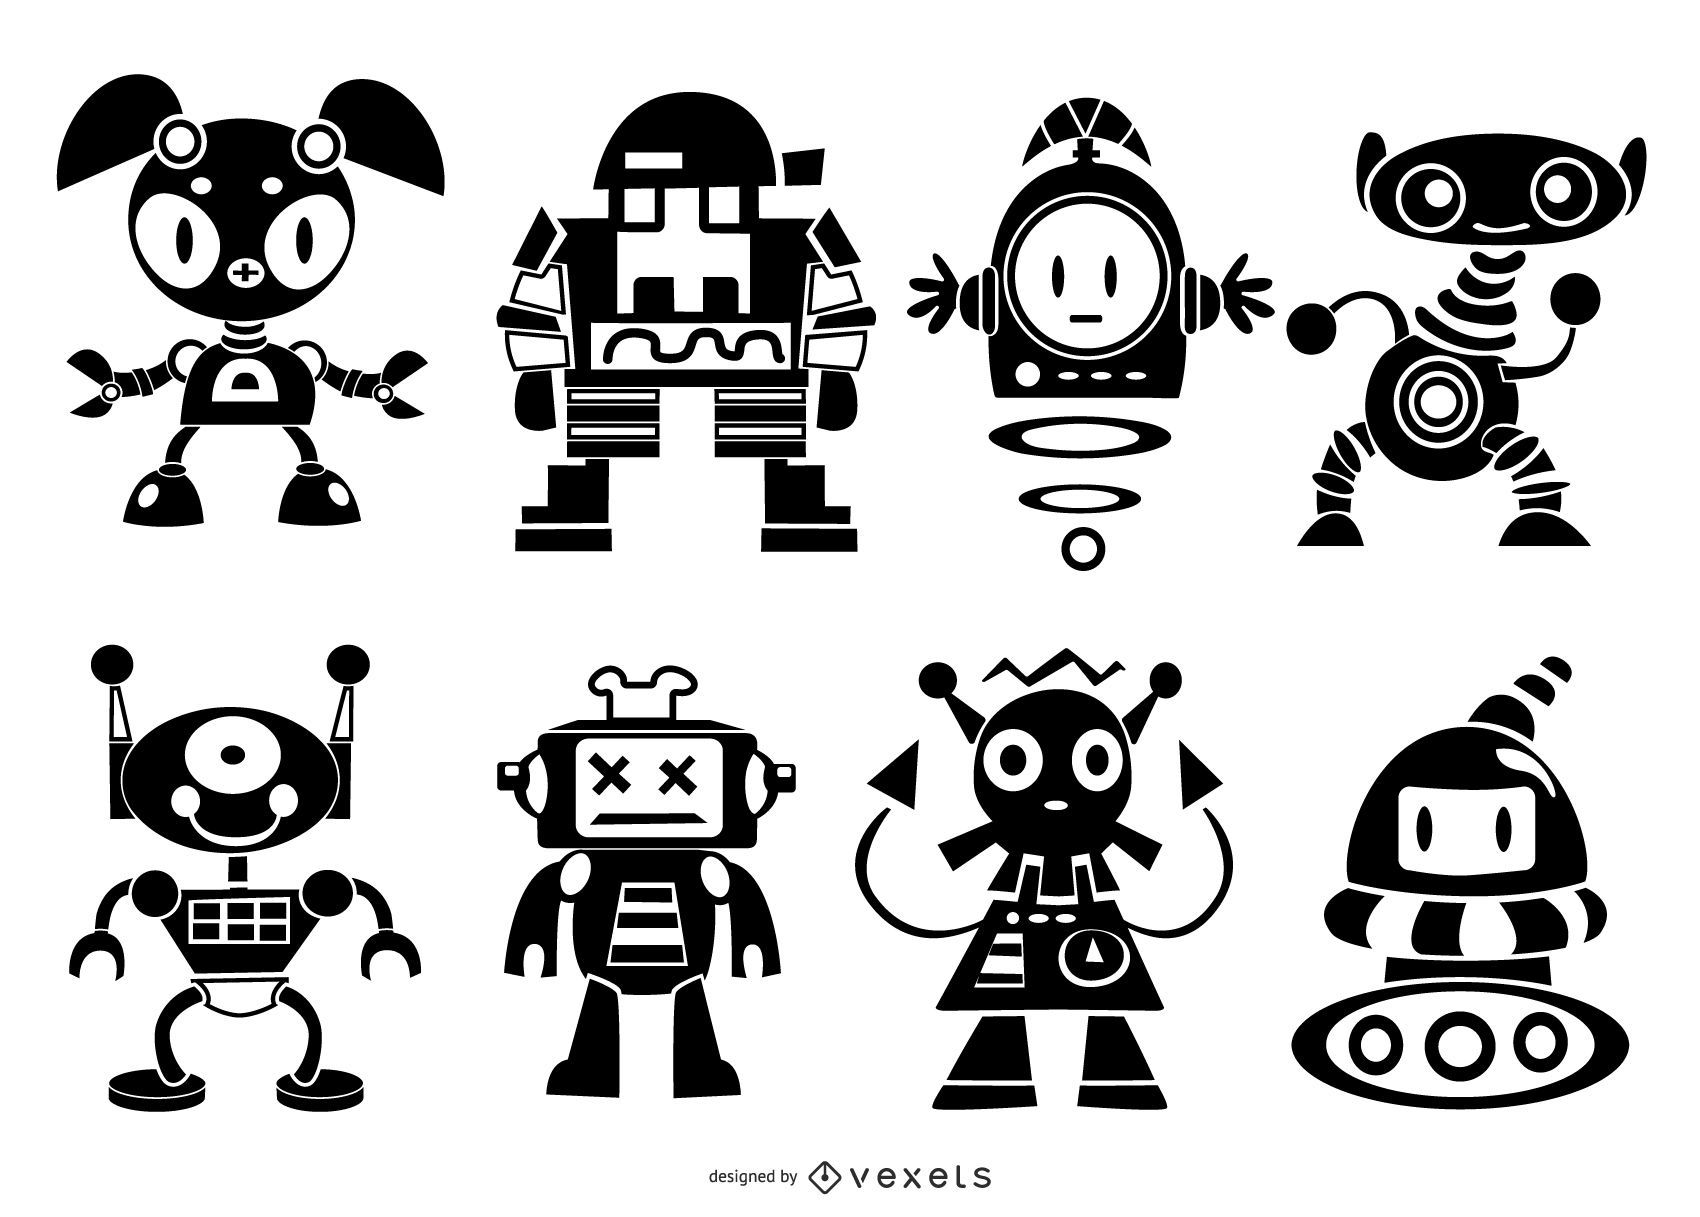 Cute robots silhouette pack